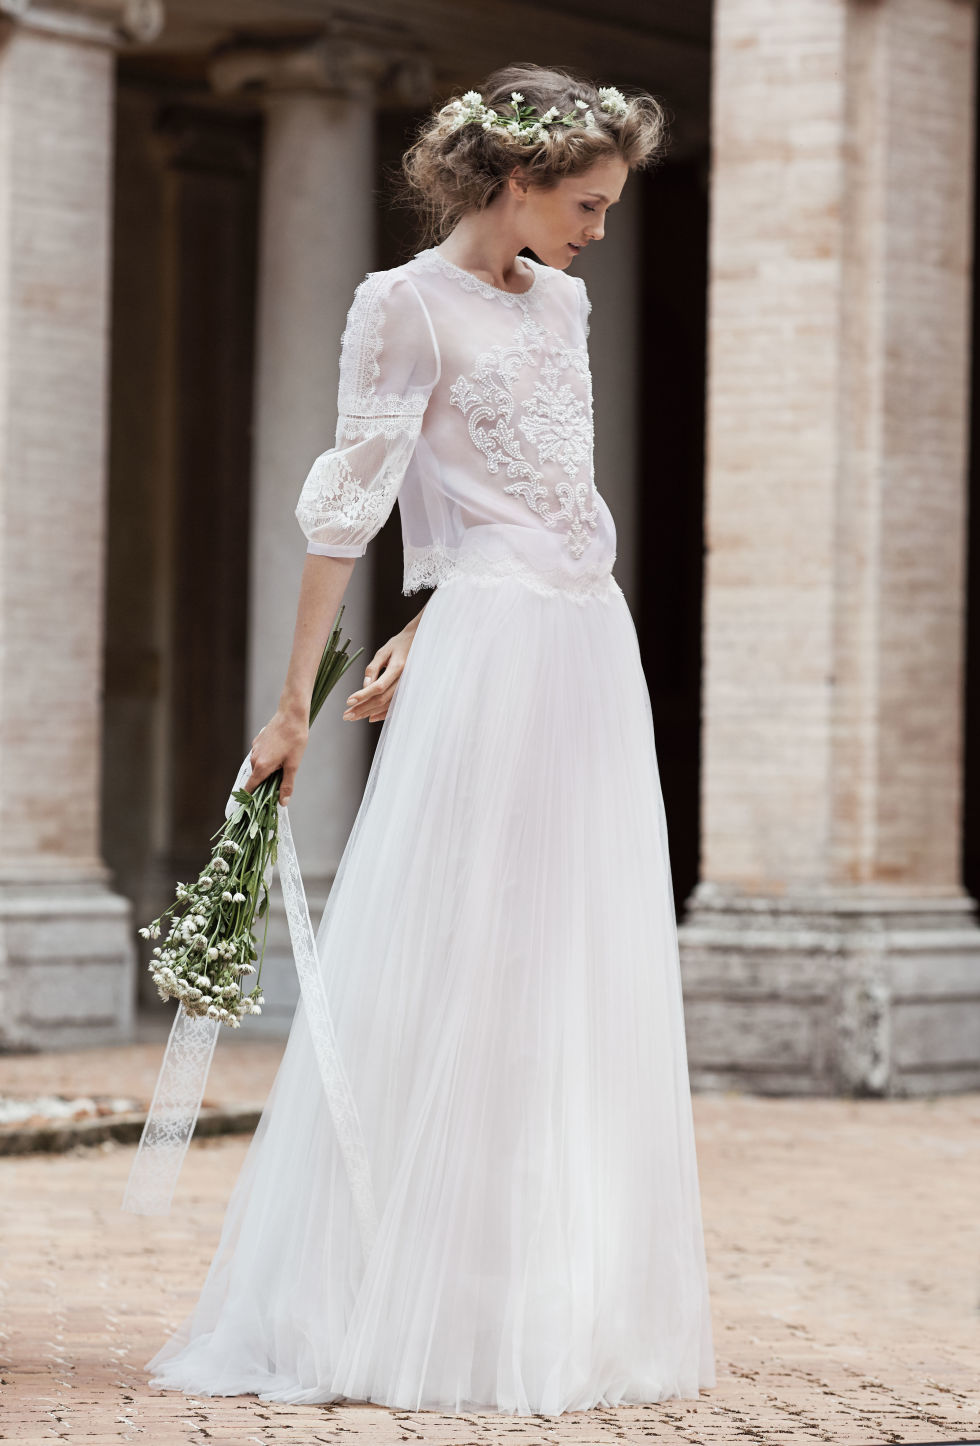 The dress gallery - 13 Unique Wedding Dresses For 2016 Non Traditional Spring Wedding Dresses